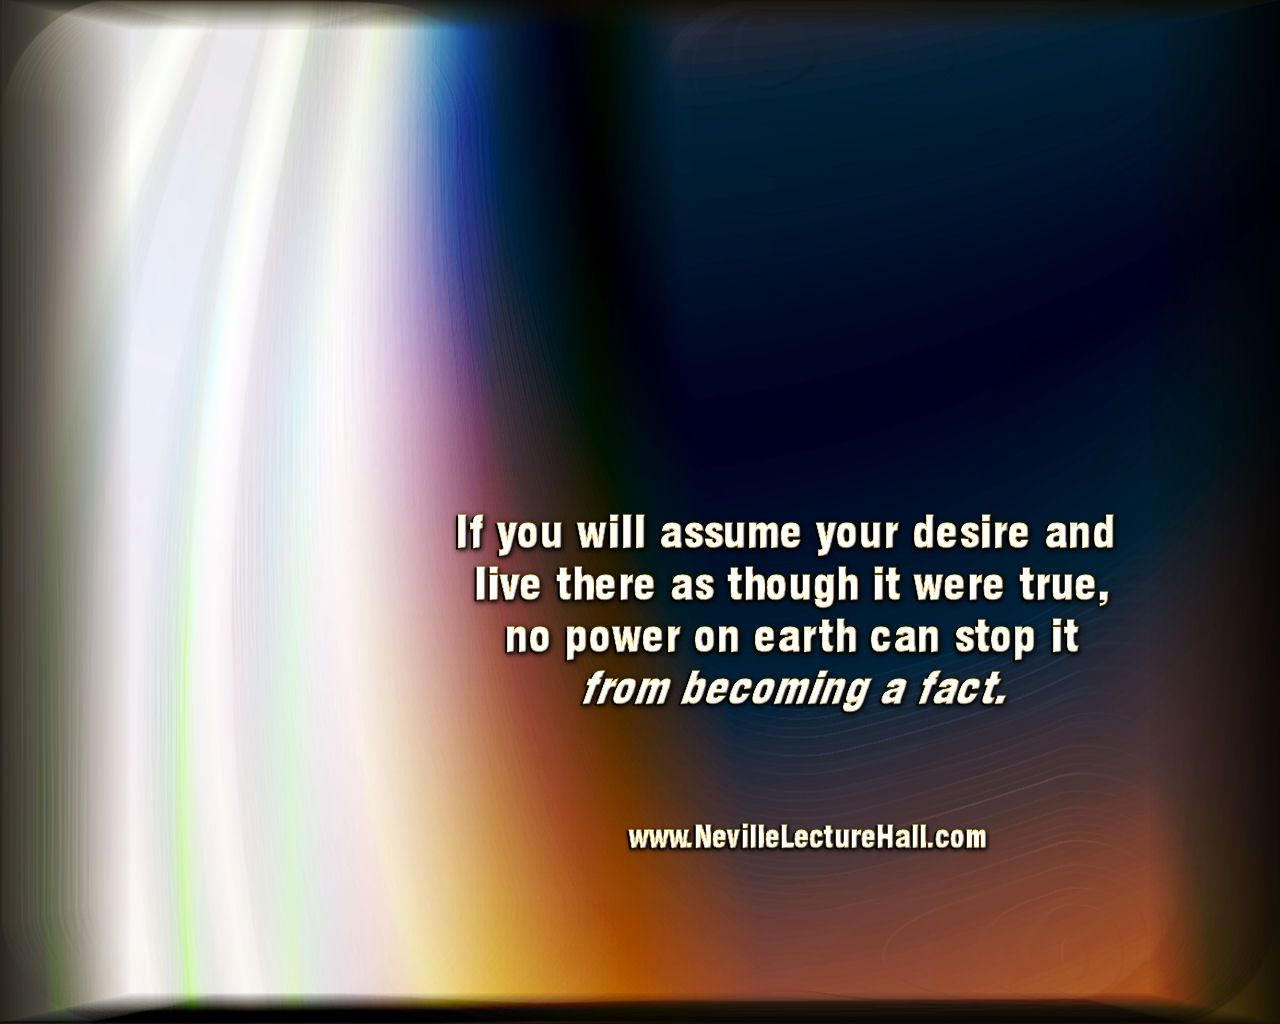 If you will assume your desire and live there as though it were true, no power on earth can stop it from becoming a fact. Neville Goddard